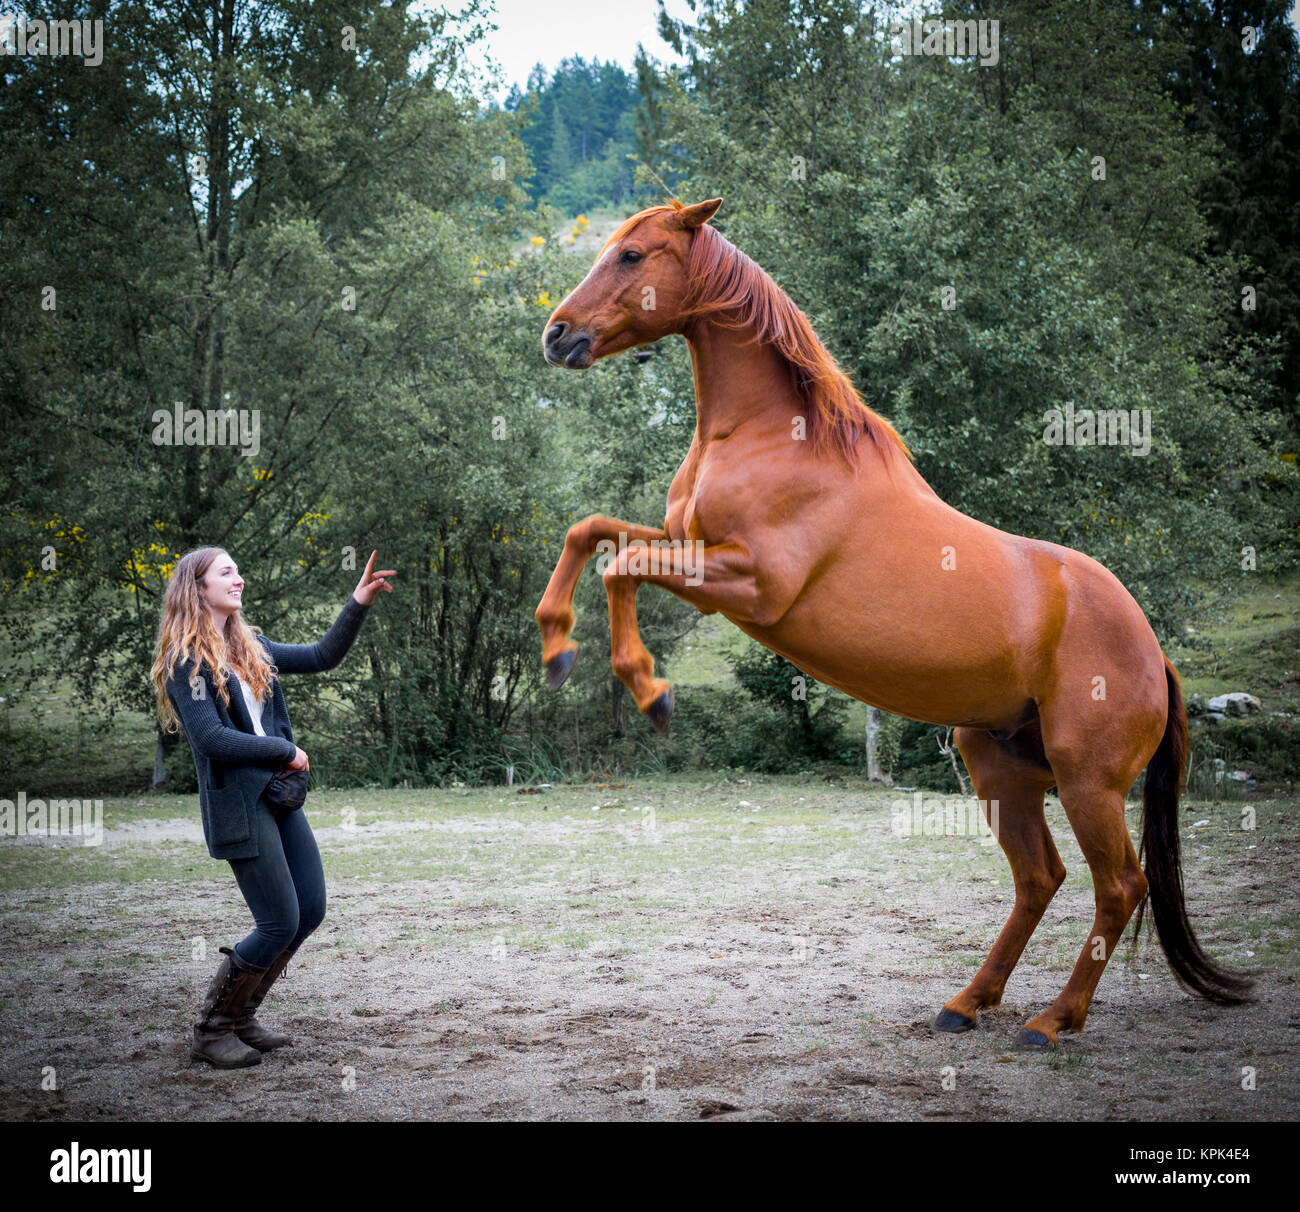 A young woman training a horse in a field and the horse is standing on it's hind legs in front of her - Stock Image